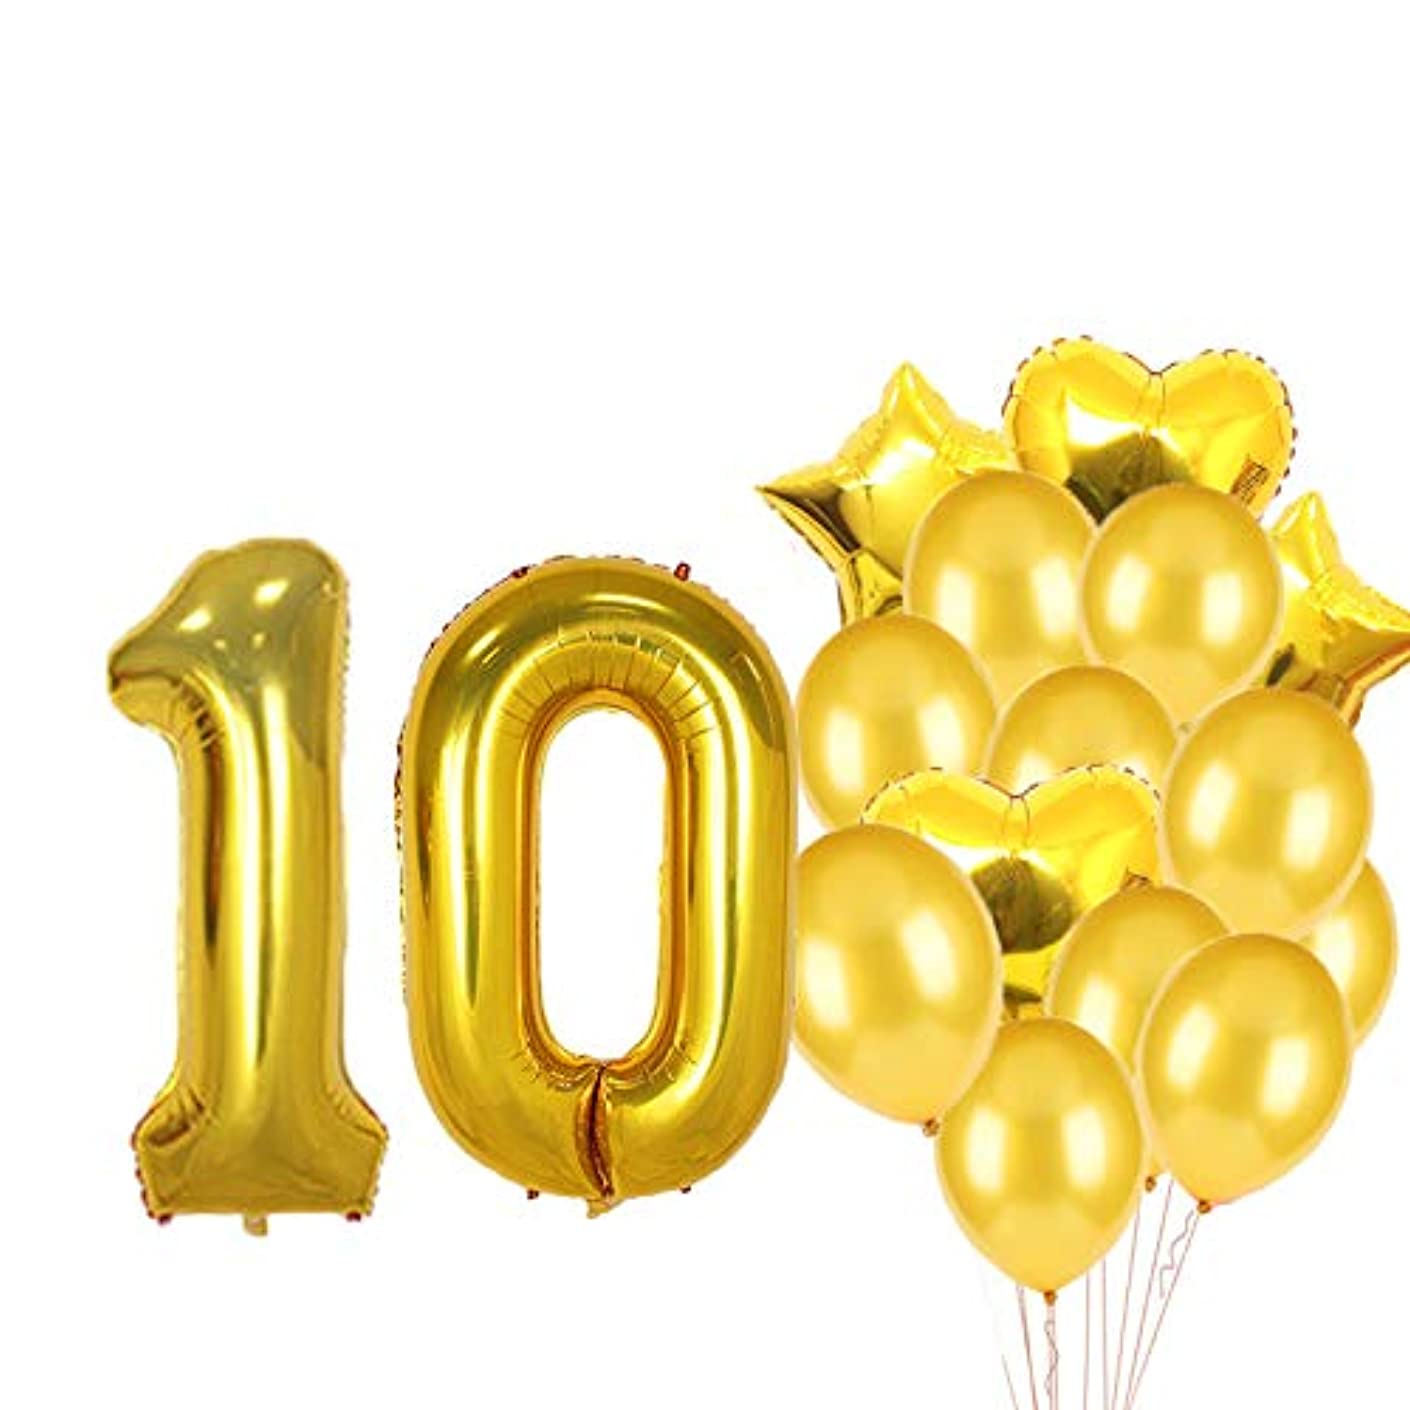 Sweet 10th Birthday Decorations Party Supplies,Gold Number 10 Balloons,10th Foil Mylar Balloons Latex Balloon Decoration,Great 10th Birthday Gifts for Girls,Women,Men,Photo Props